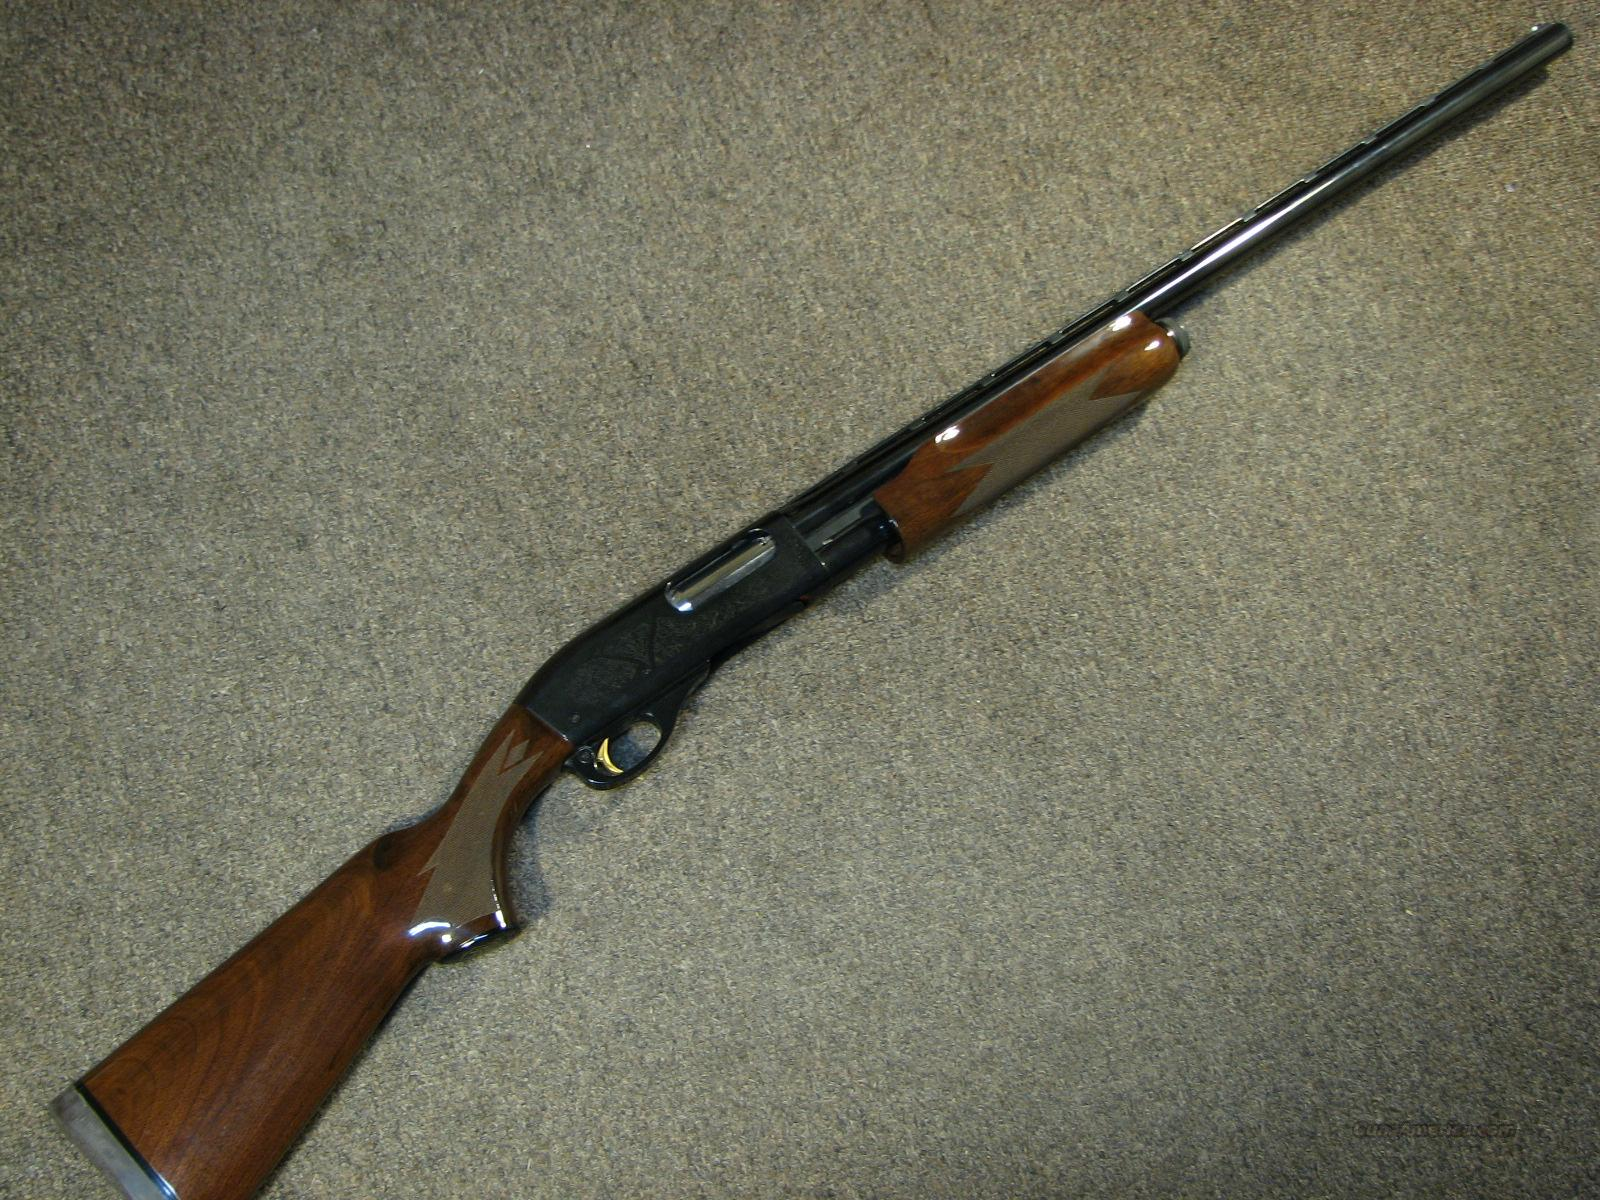 REMINGTON 870 WINGMASTER 12 GA - LIKE NEW!